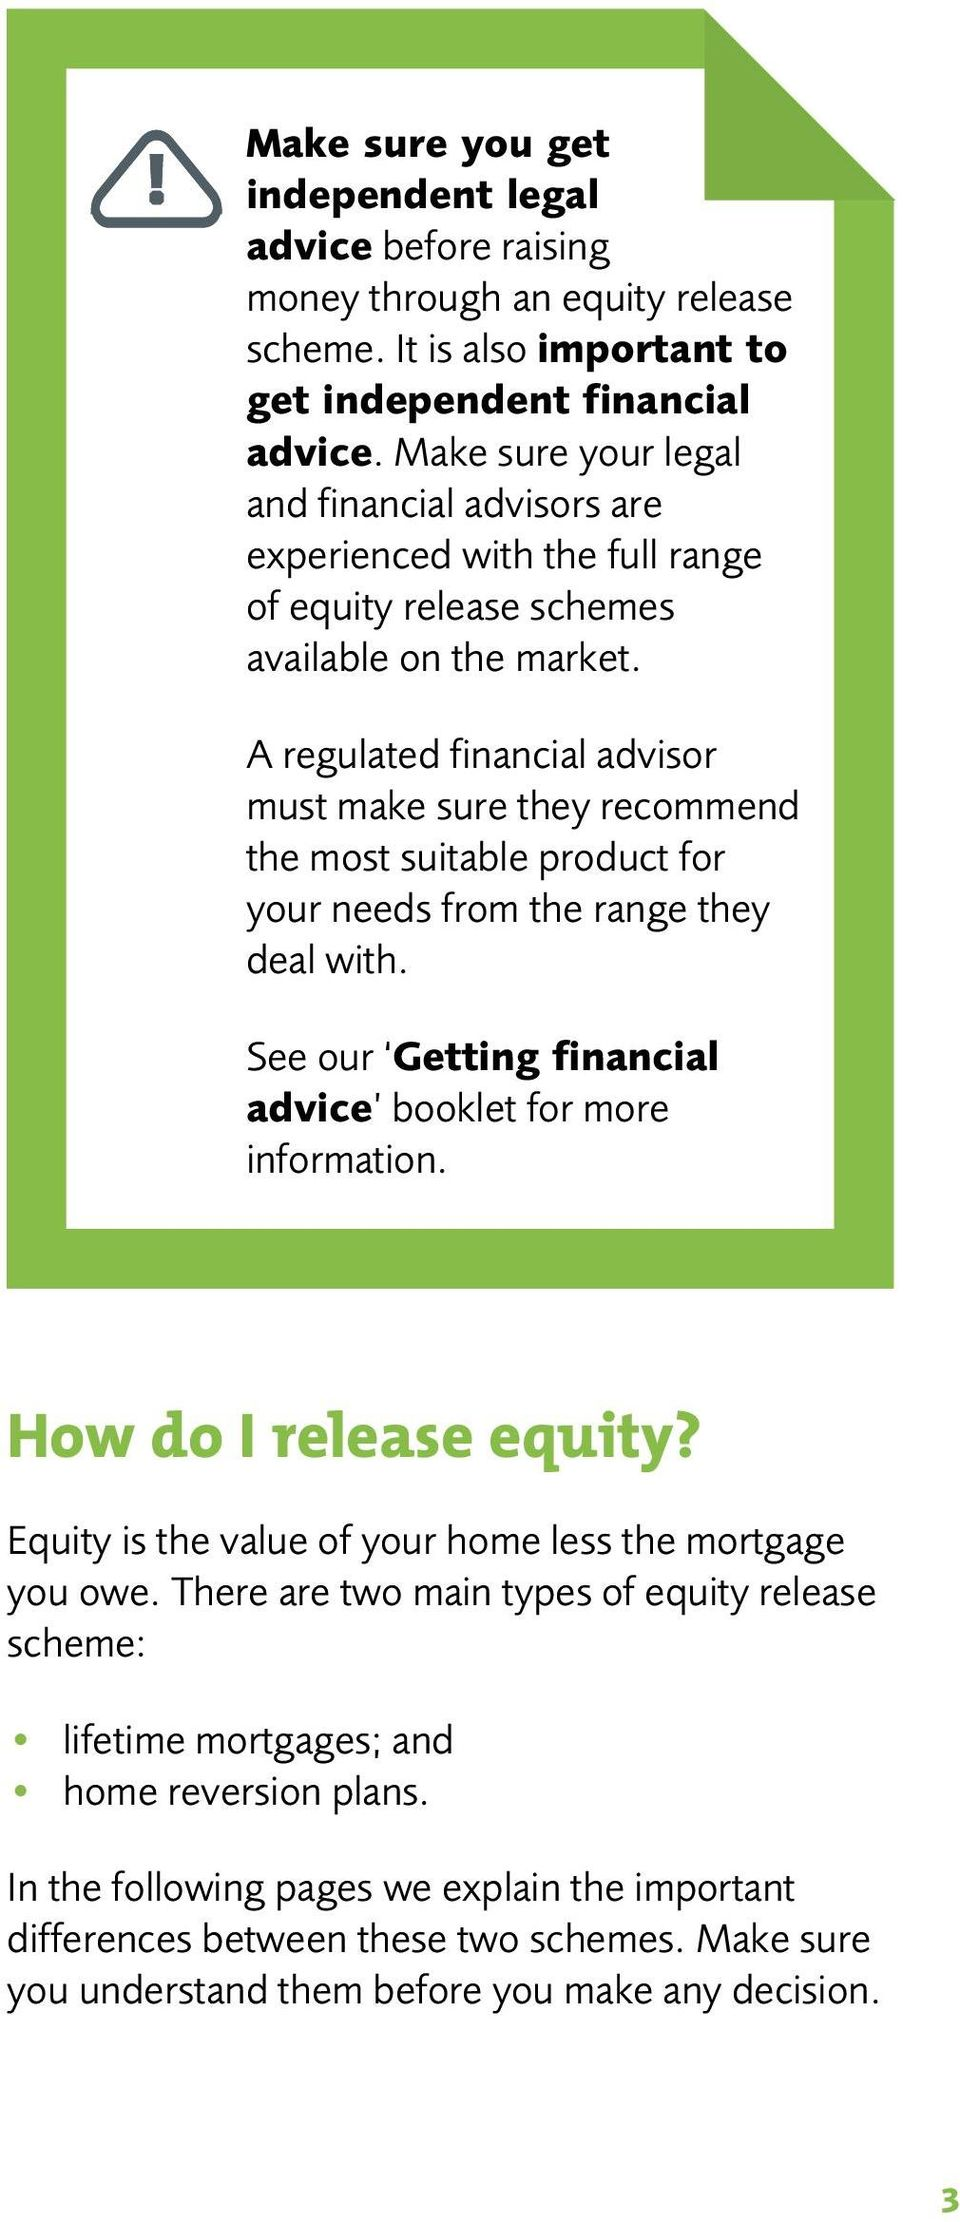 A regulated financial advisor must make sure they recommend the most suitable product for your needs from the range they deal with. See our Getting financial advice booklet for more information.